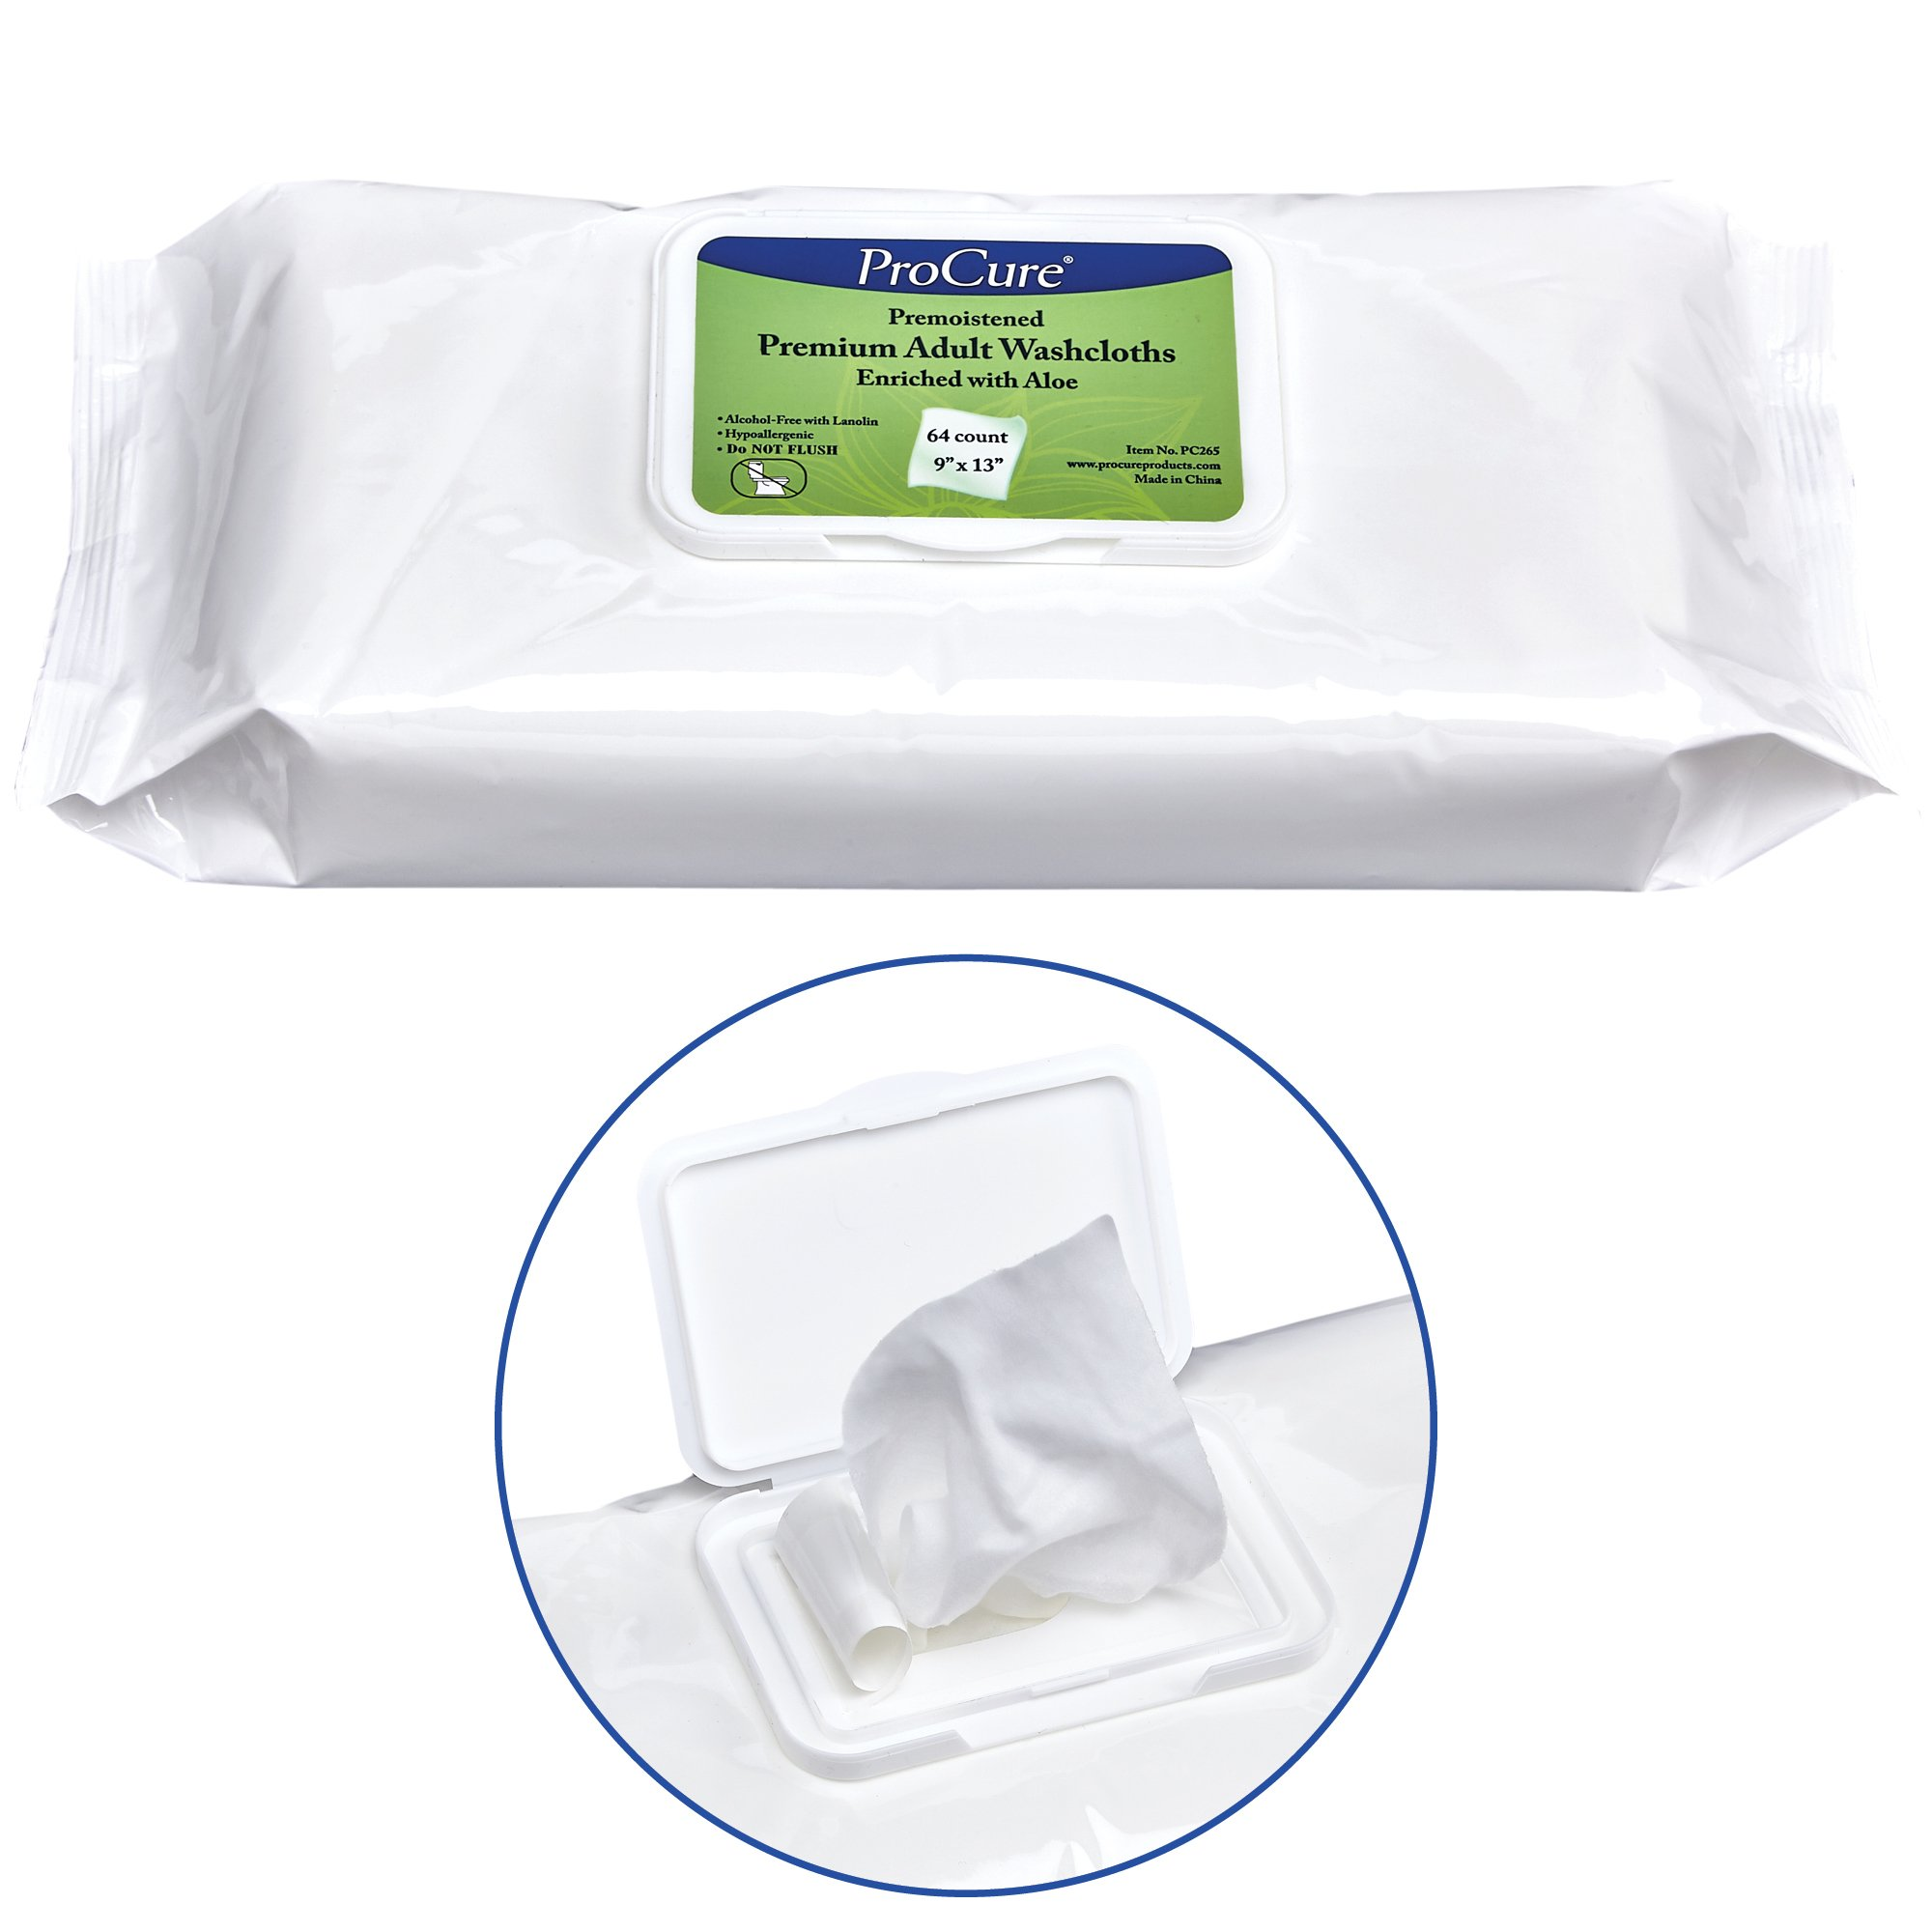 ProCure Disposable Adult Washcloths - 64 Count - Enriched with Aloe and Lanolin, Hypoallergenic and Alcohol Free - Premium Quality, Pre Moistened, Soft 9''x13'' Wet Wipes